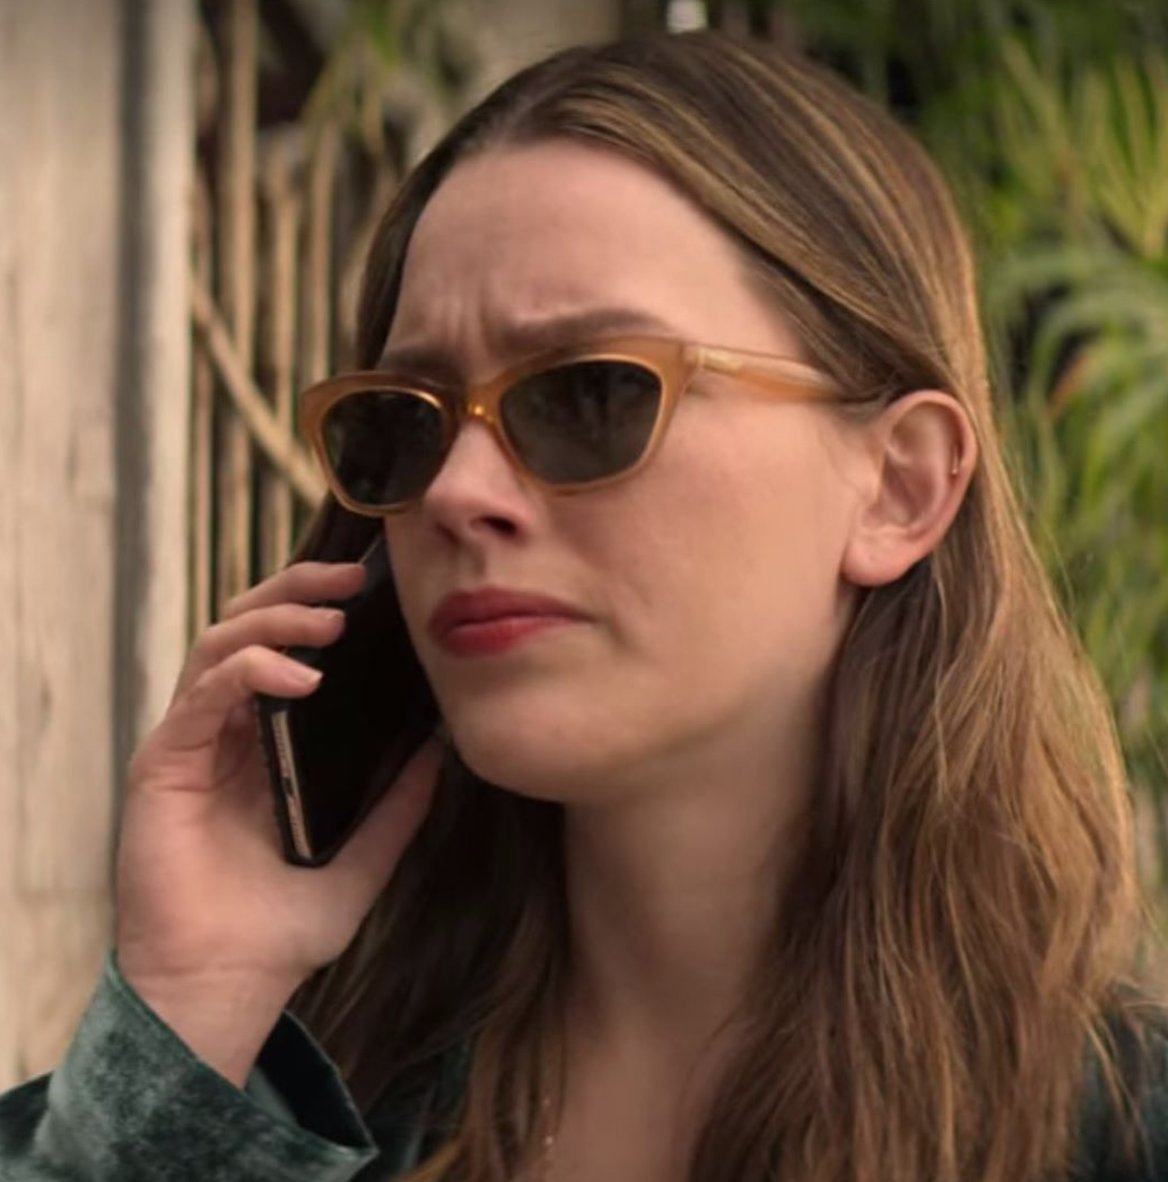 Kenmark Eyewear On Twitter Victoria Pedretti Who Plays Love Quinn On Younetflix Wearing The Zacposen Dolly